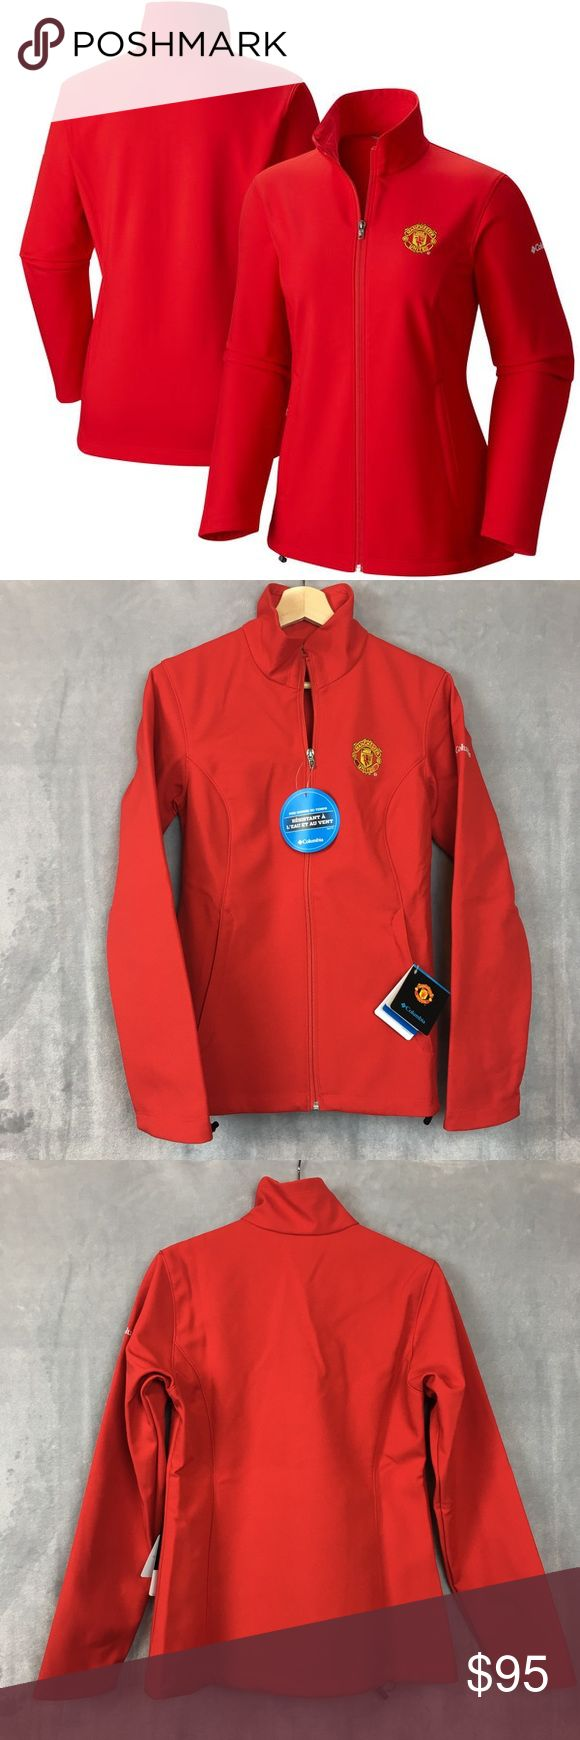 "Columbia Manchester United Jacket Kruser Coat NWT COLUMBIA KRUSER RIDGE SOFTSHELL JACKET WITH MACHESTER UNITED PATCH #1730831646  Size:  Medium; Womens  Color:  ""Cherrybomb"" Red  Condition: New with Tags; 100% Authentic  We reserve the right to change shipping carriers and methods as needed. Columbia Jackets & Coats"